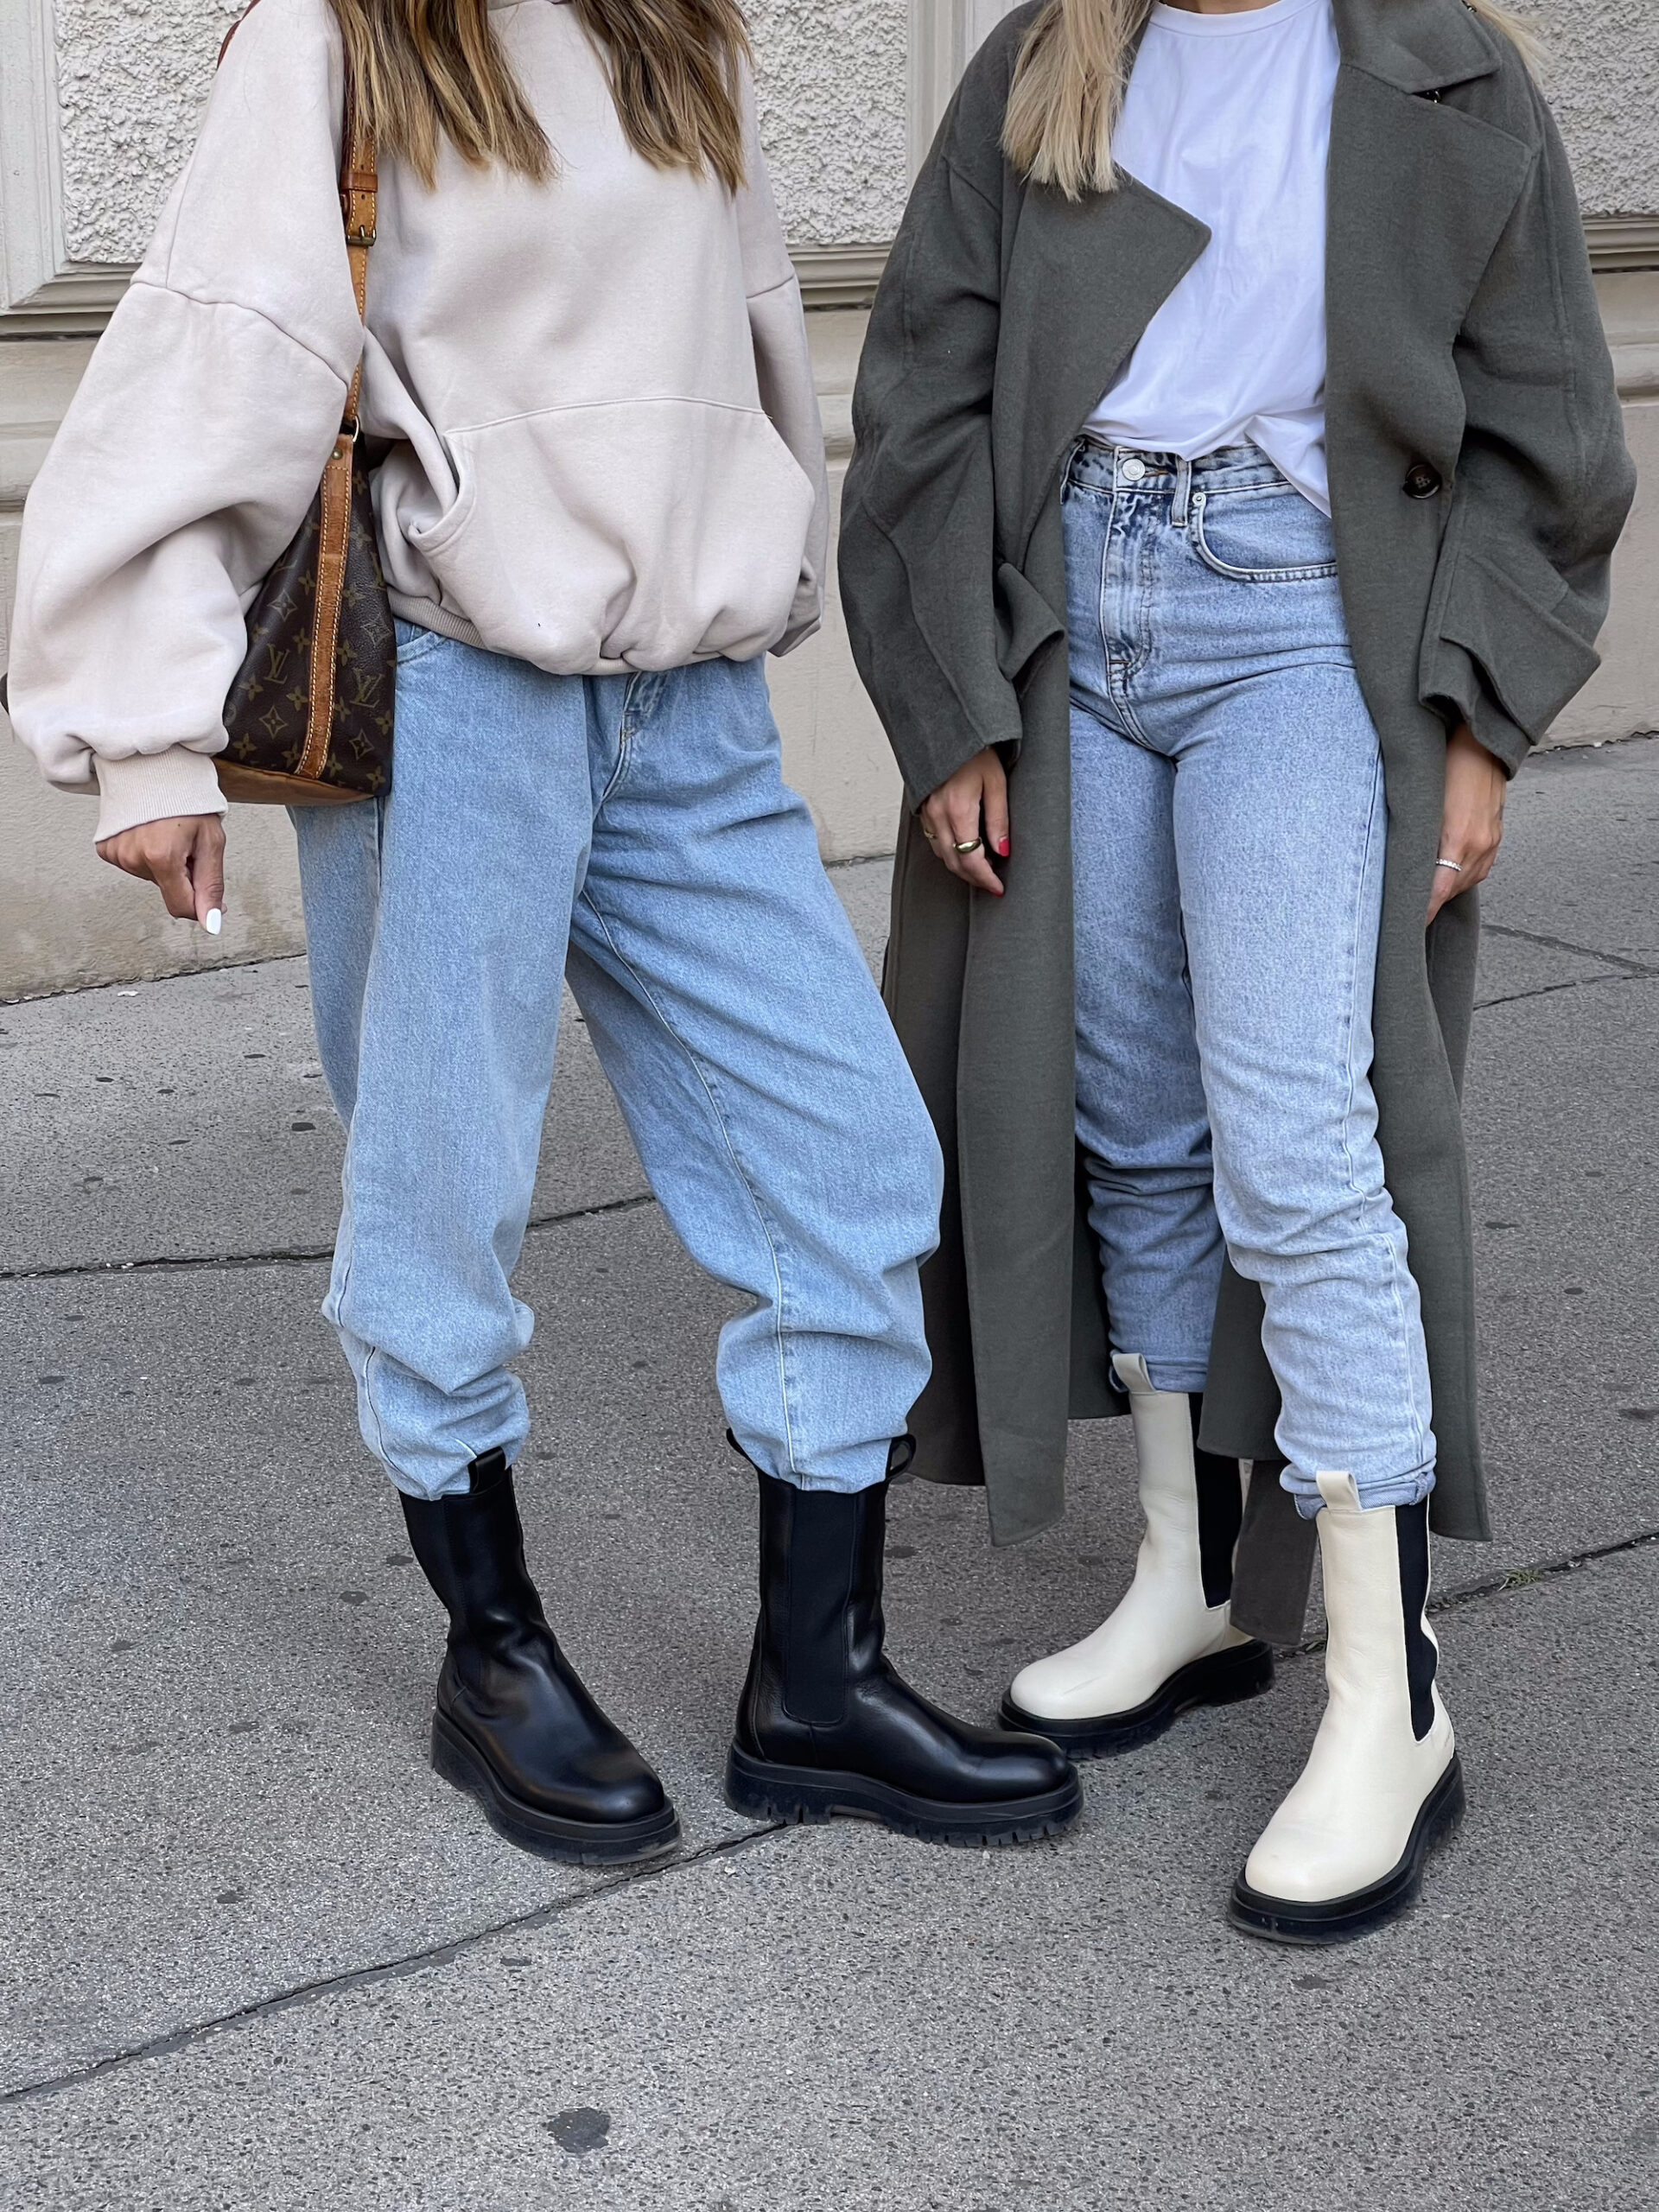 Lower body of the two influencers Sonia Dhillon and Christina Biluca. Christina Biluca is on the right, wearing denim mom jeans, a white t-shirt, a khaki trench coat and the CPH1000 in vitello ecru. To her left is Sonia Dhillon wearing light denim mom jeans, a cropped hoodie in beige, the CPH1000 in clear black and carrying a Louis Vuitton around her right shoulder.